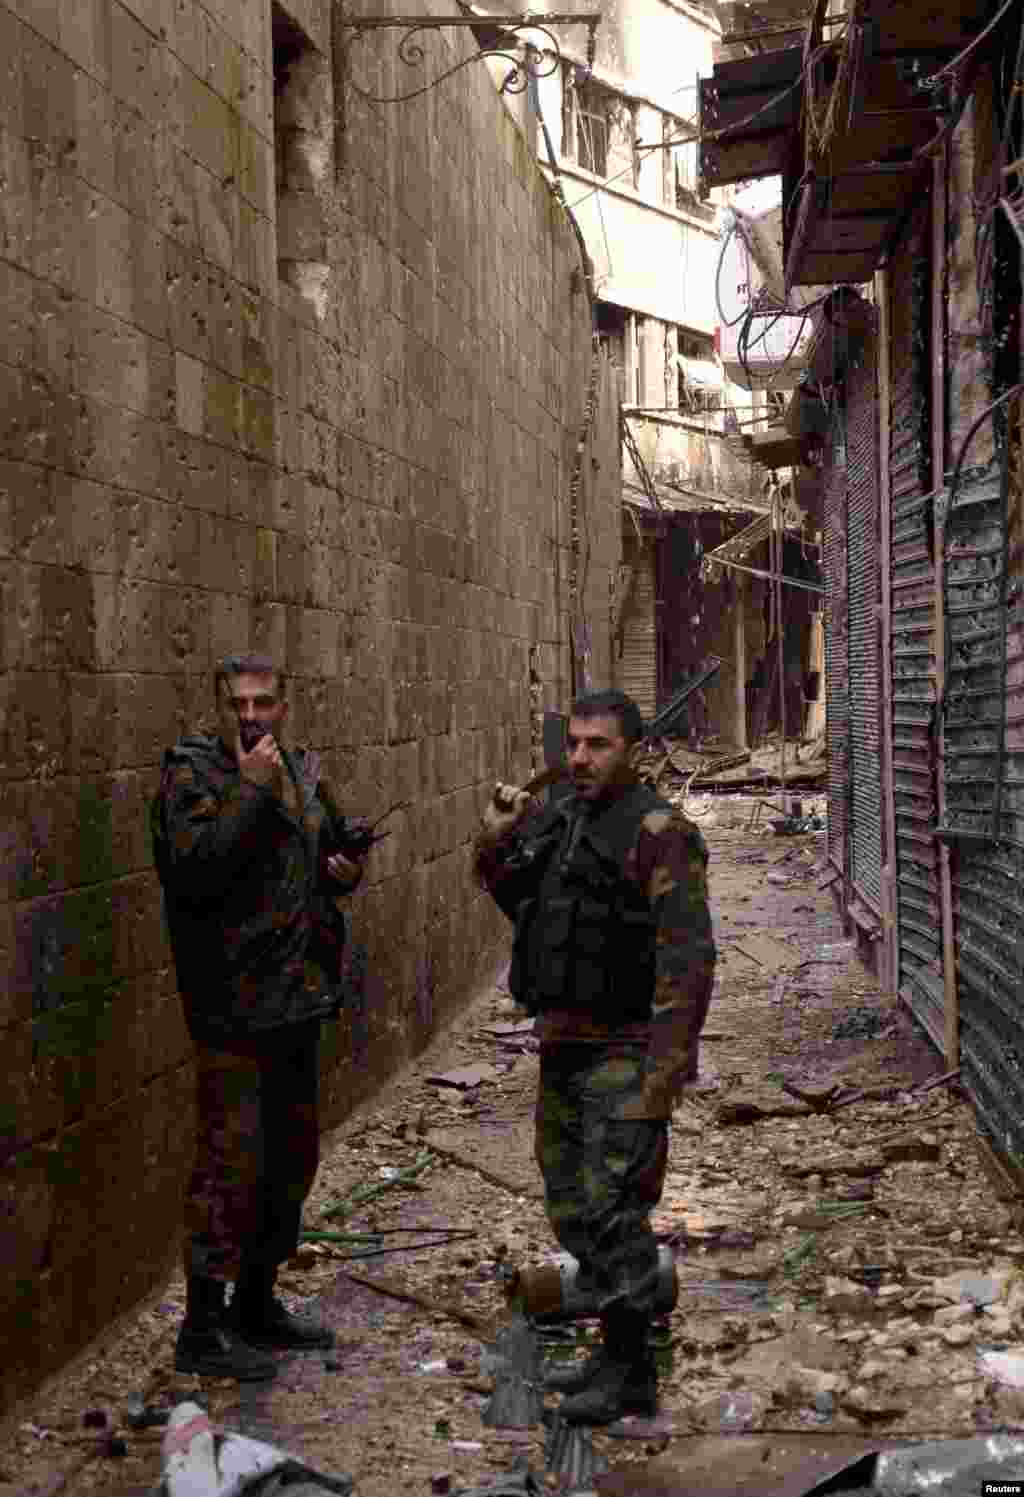 Forces loyal to Syria's President Bashar al-Assad deploy in Al-Suwayqa, Aleppo after capturing it from the Free Syrian Army, Feb. 25, 2013.